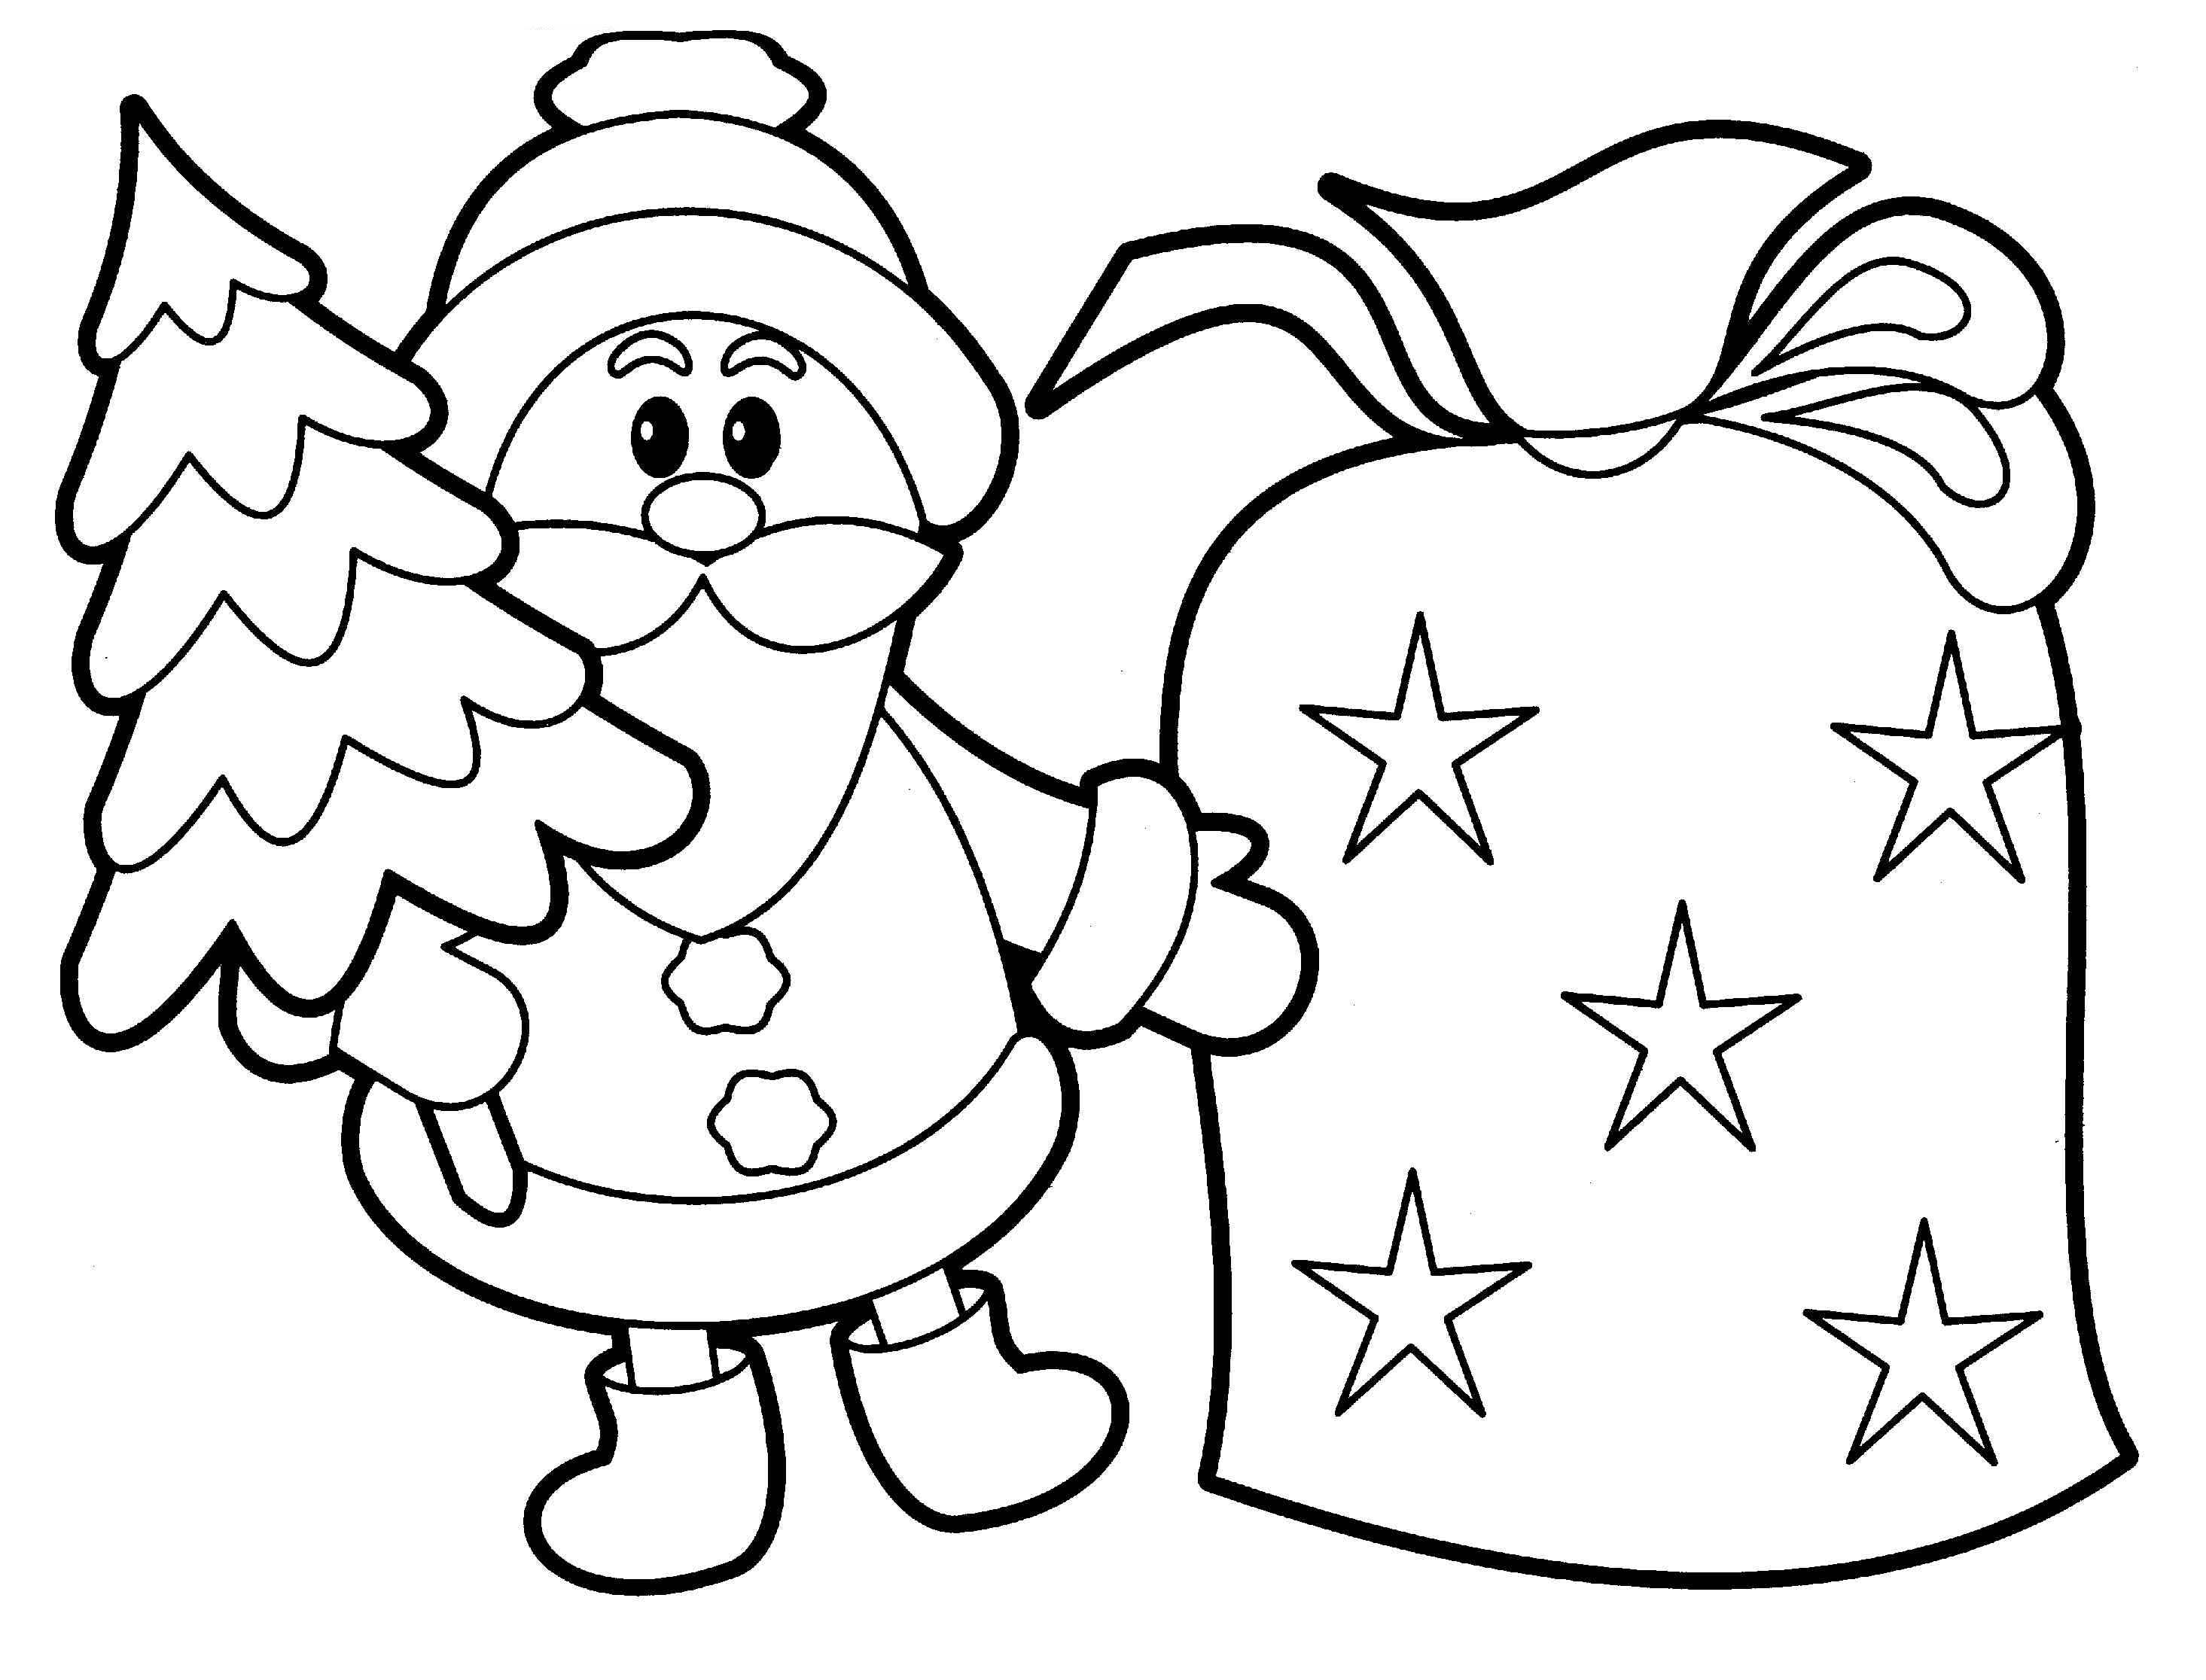 Christmas Coloring Printouts With Santa Claus Pages Gallery Free Books